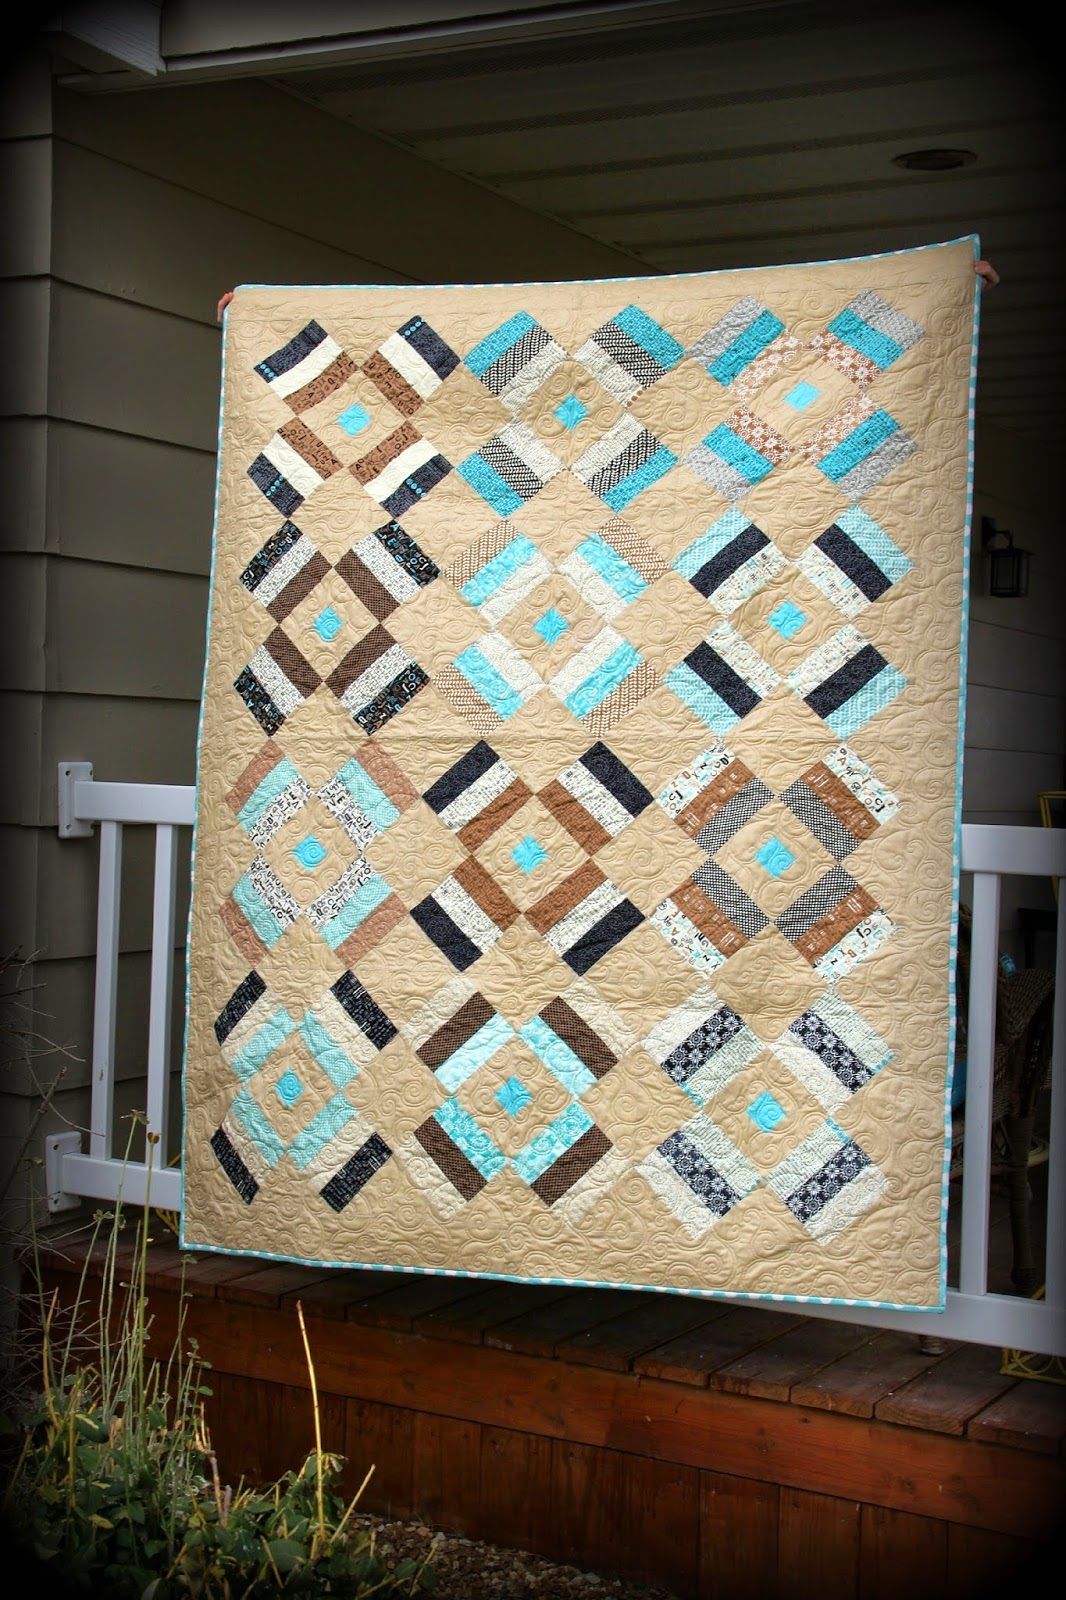 Elementary by Sweetwater jelly roll used to make lap quilt